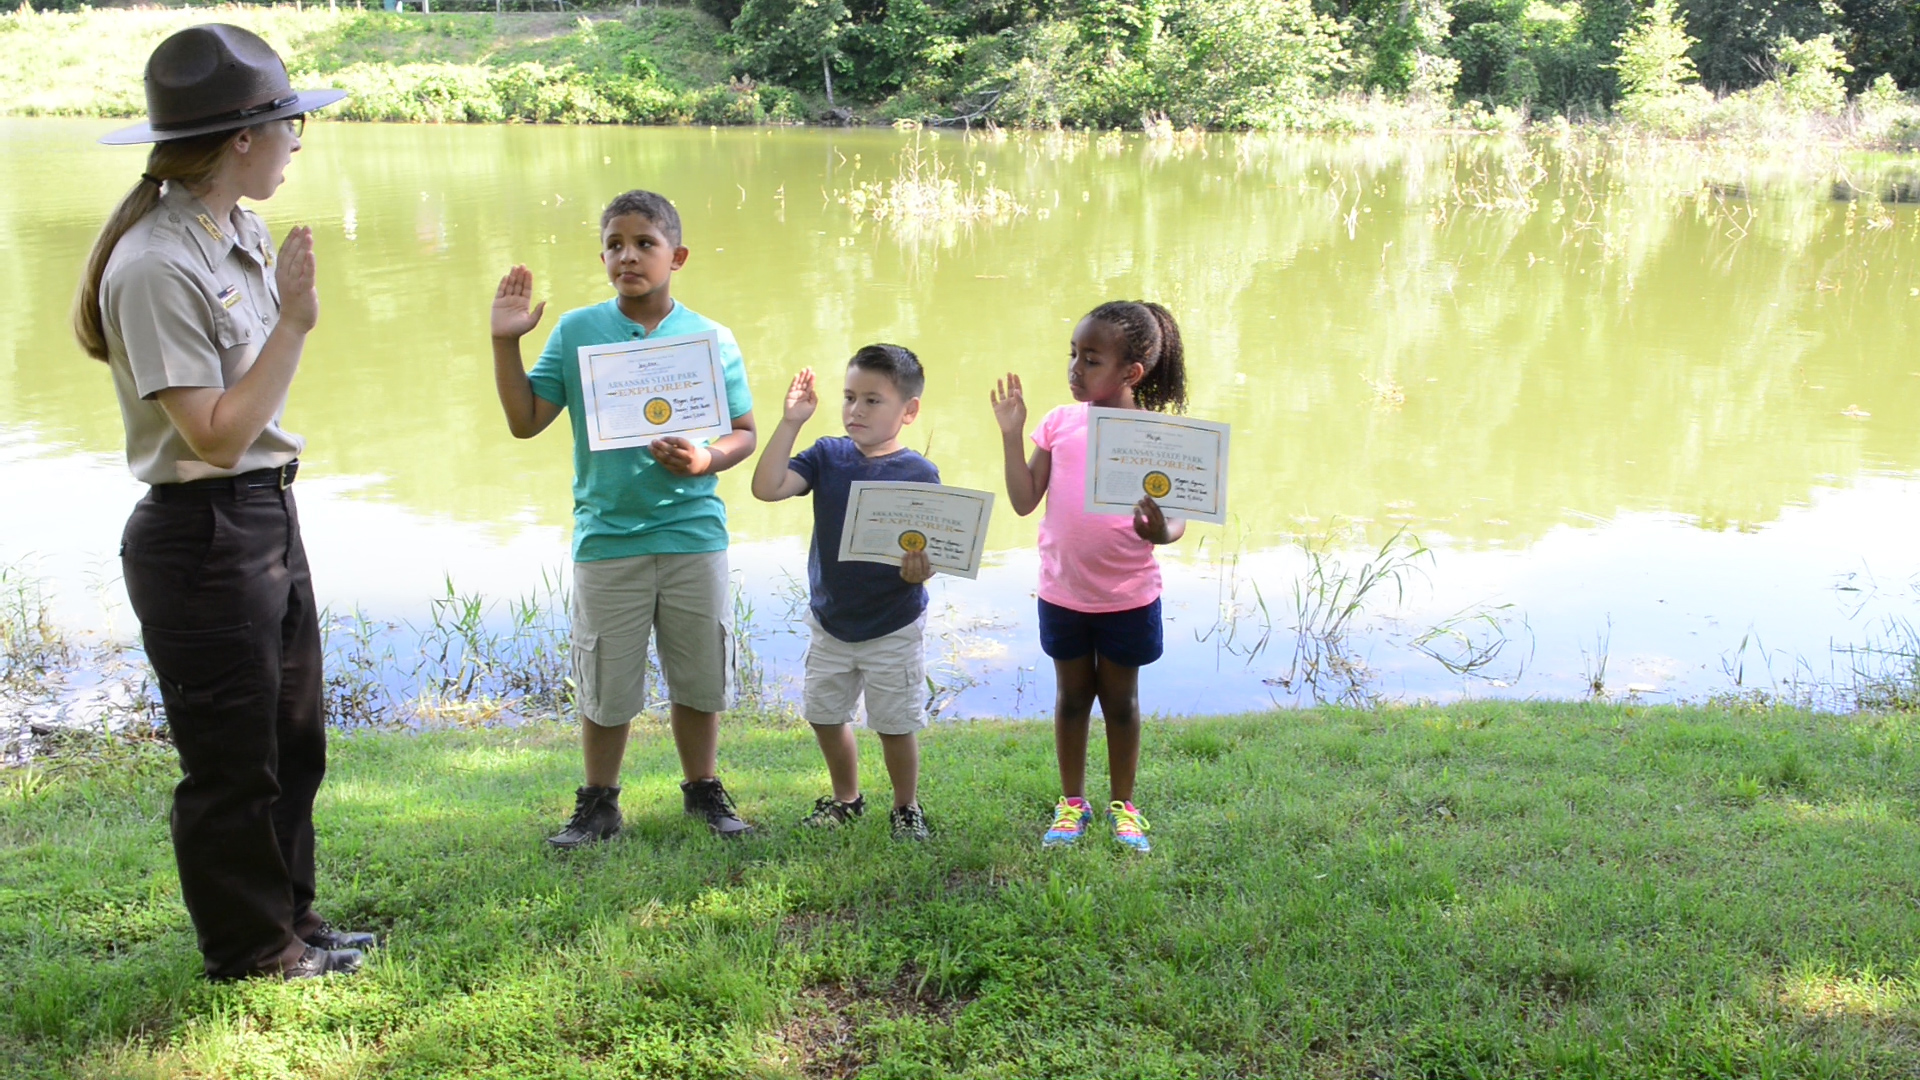 Kids taking State Park Explorer pledge